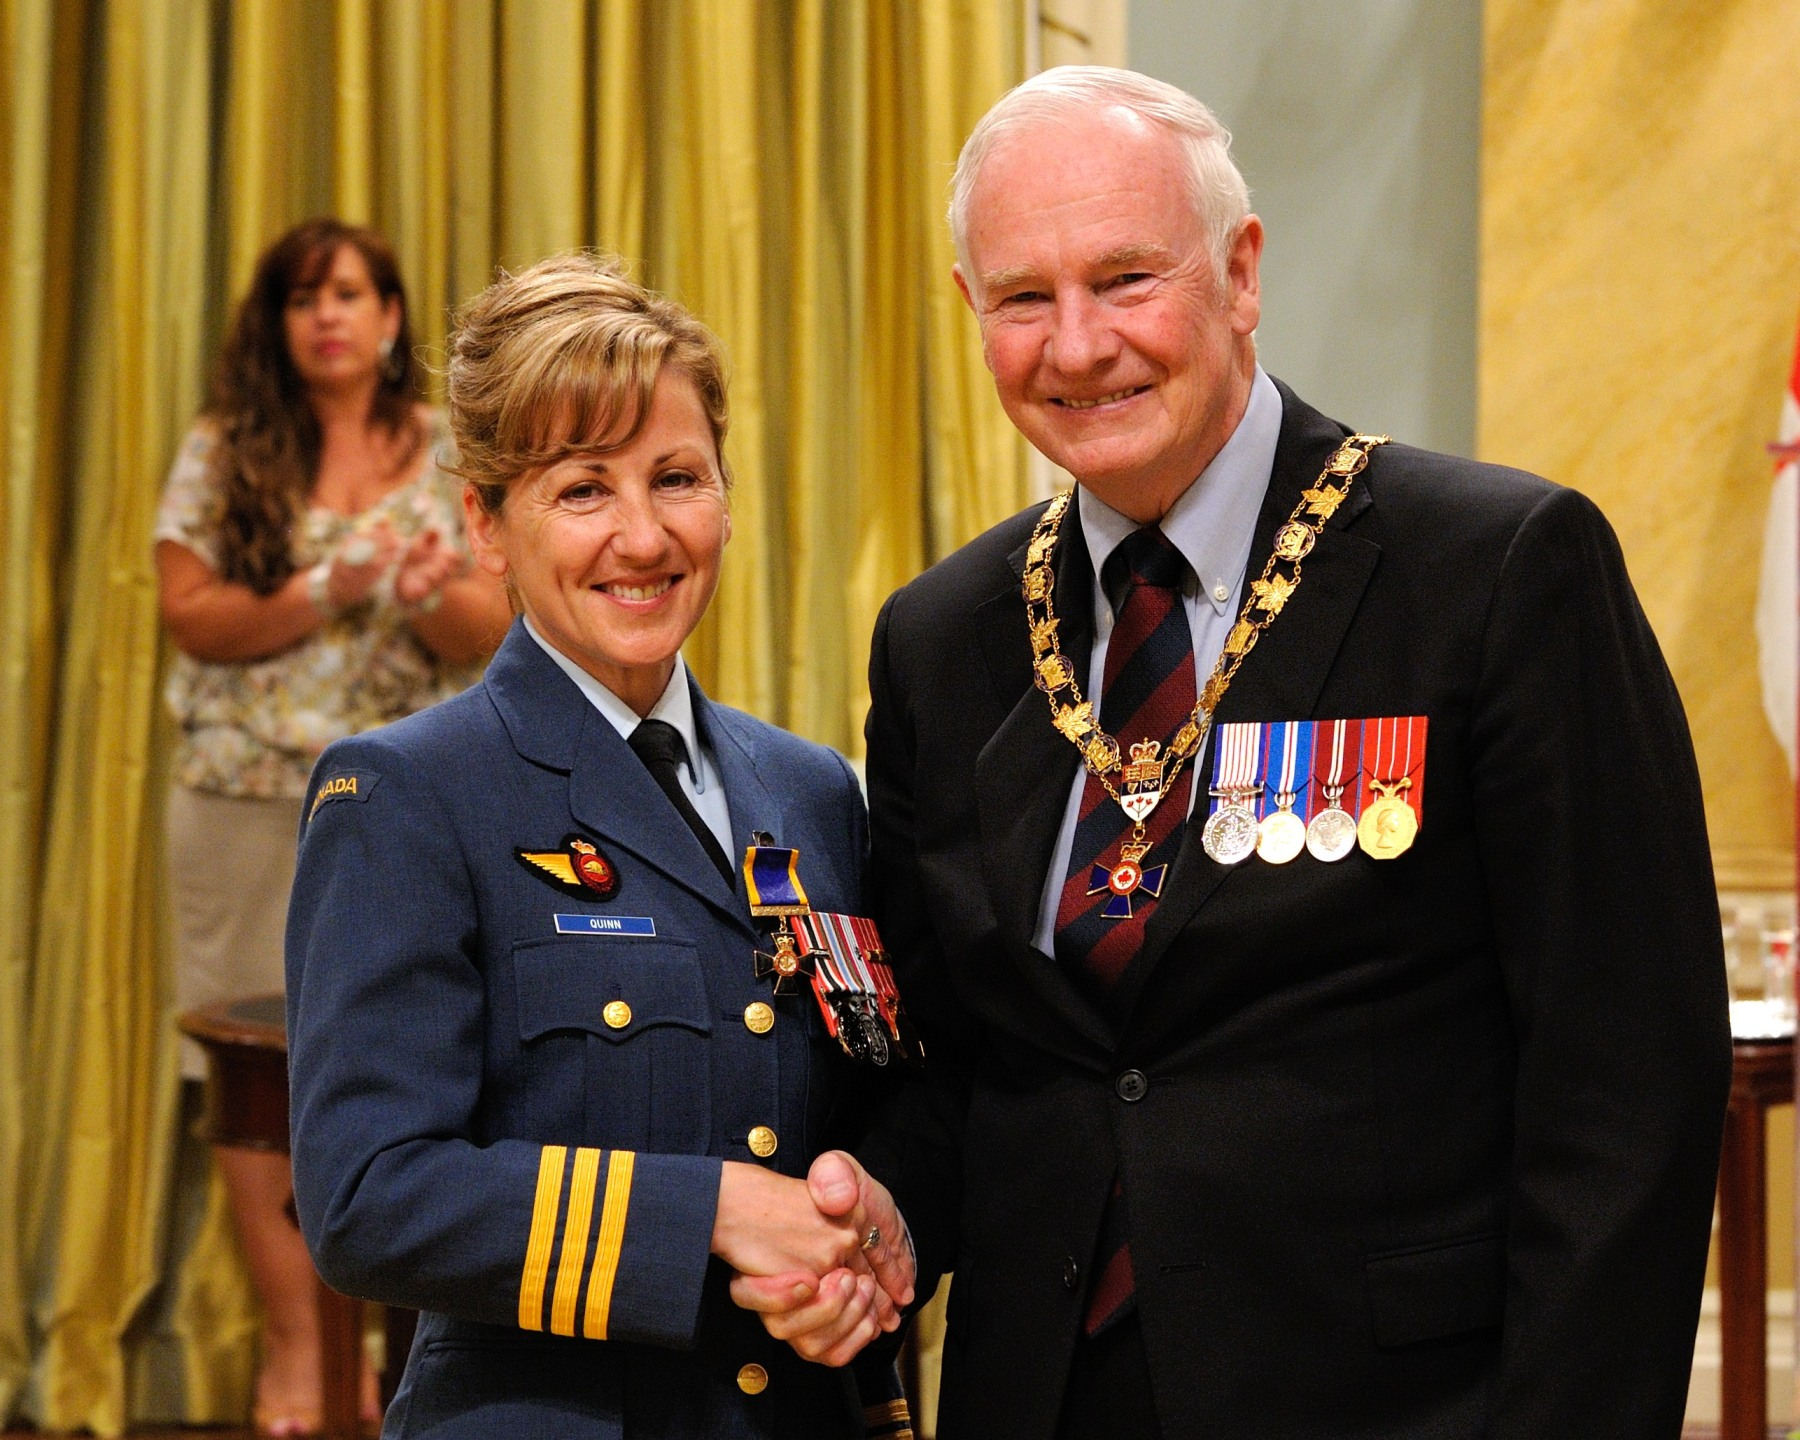 His Excellency presented the Order of Military Merit at the Officer level (O.M.M.) to Lieutenant-Colonel Darlene Quinn, O.M.M., C.D., Canadian Forces Base Esquimalt, Victoria, British Columbia.